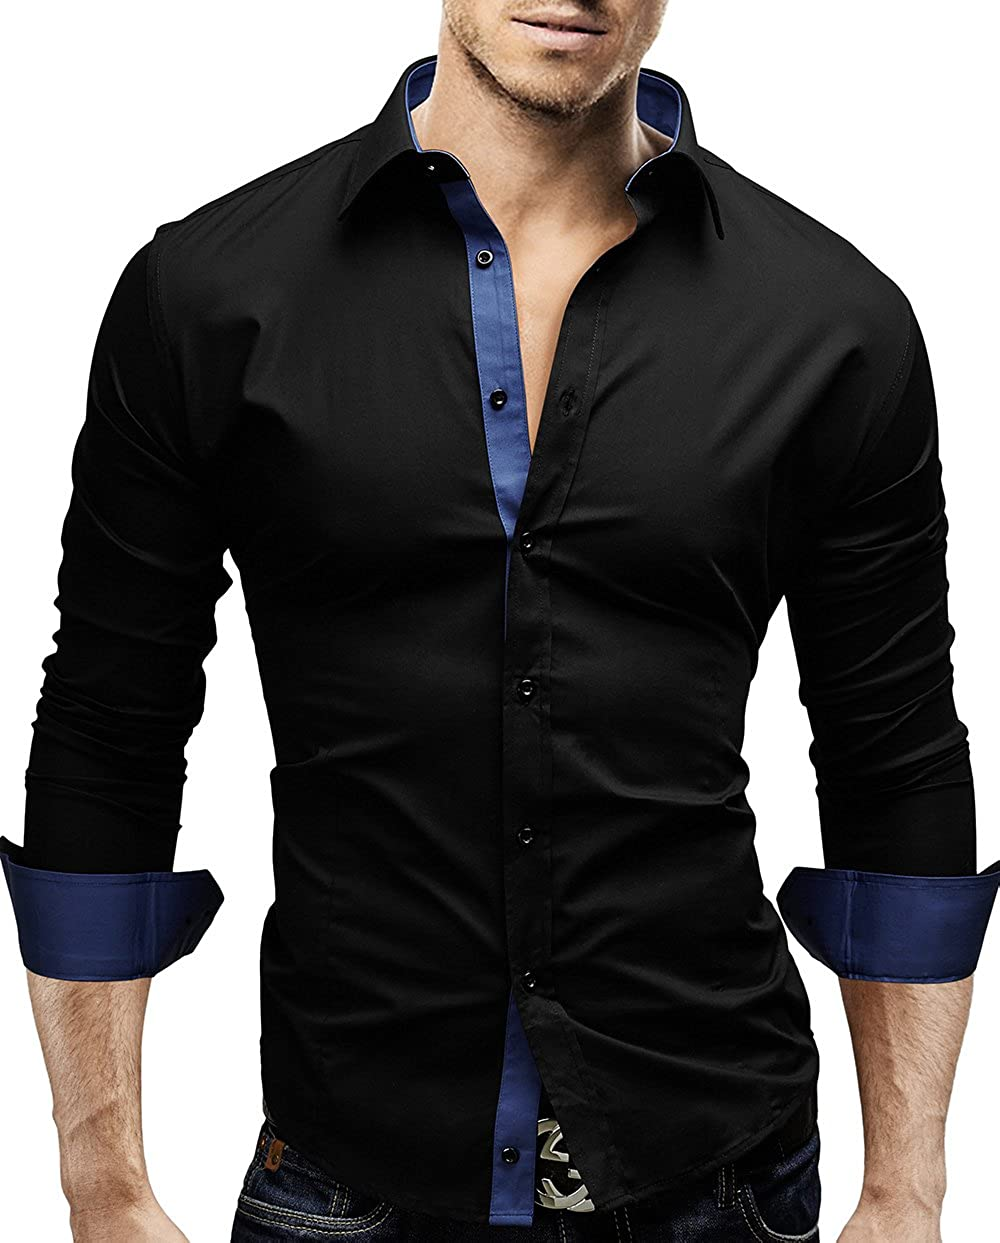 Lyon Becker Mens Shirts Long Sleeve Slim Fit Casual Formal Shirt Basic Plain Dress Office PS01